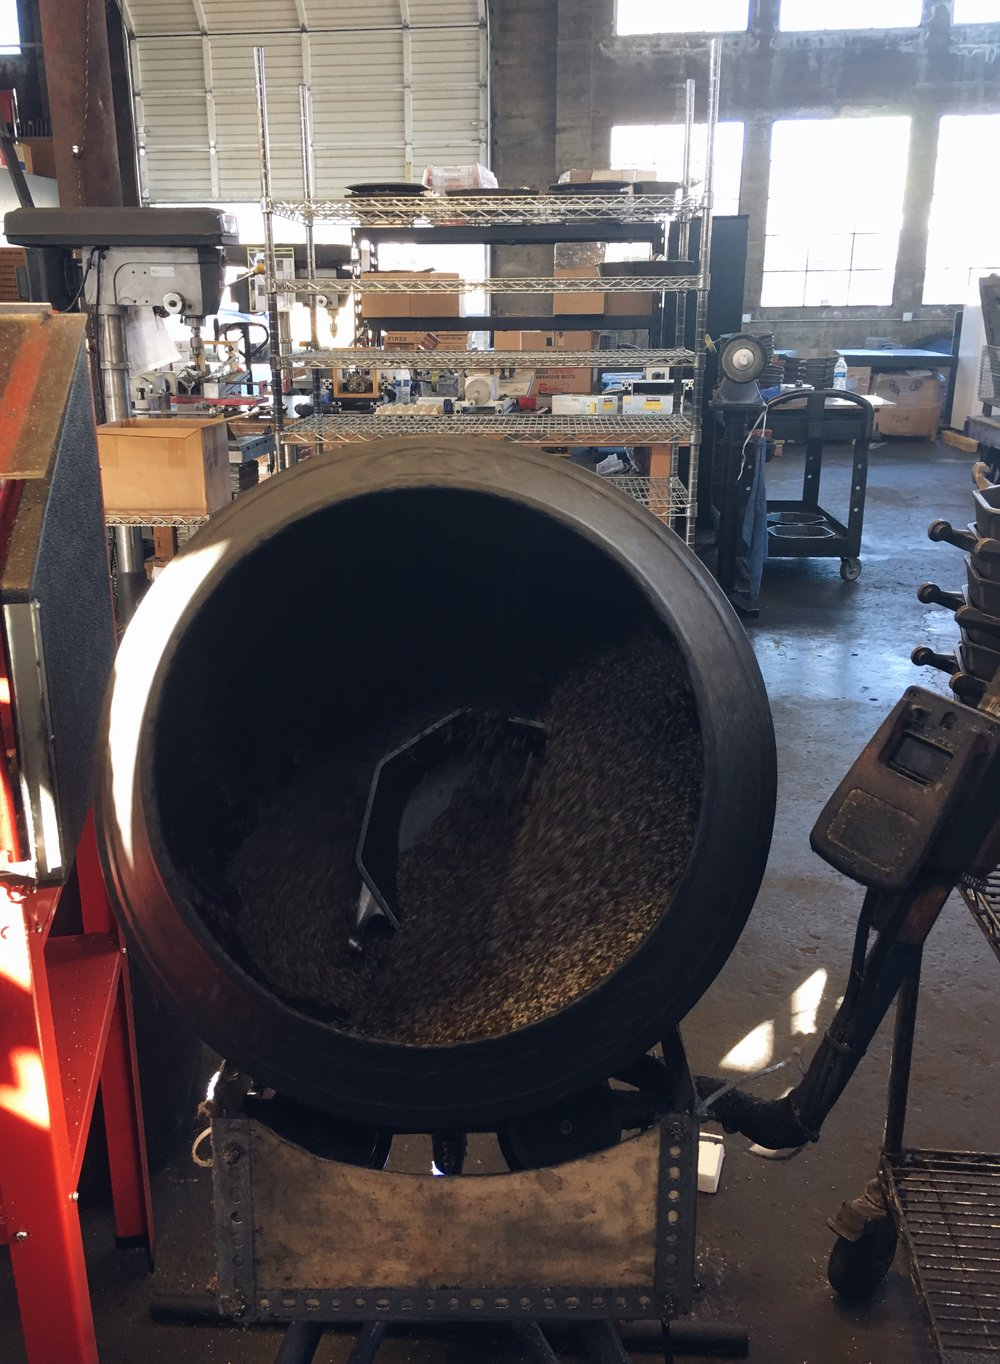 Pan seasoning in process, in a cauldron with birdseed and flaxseed oil.